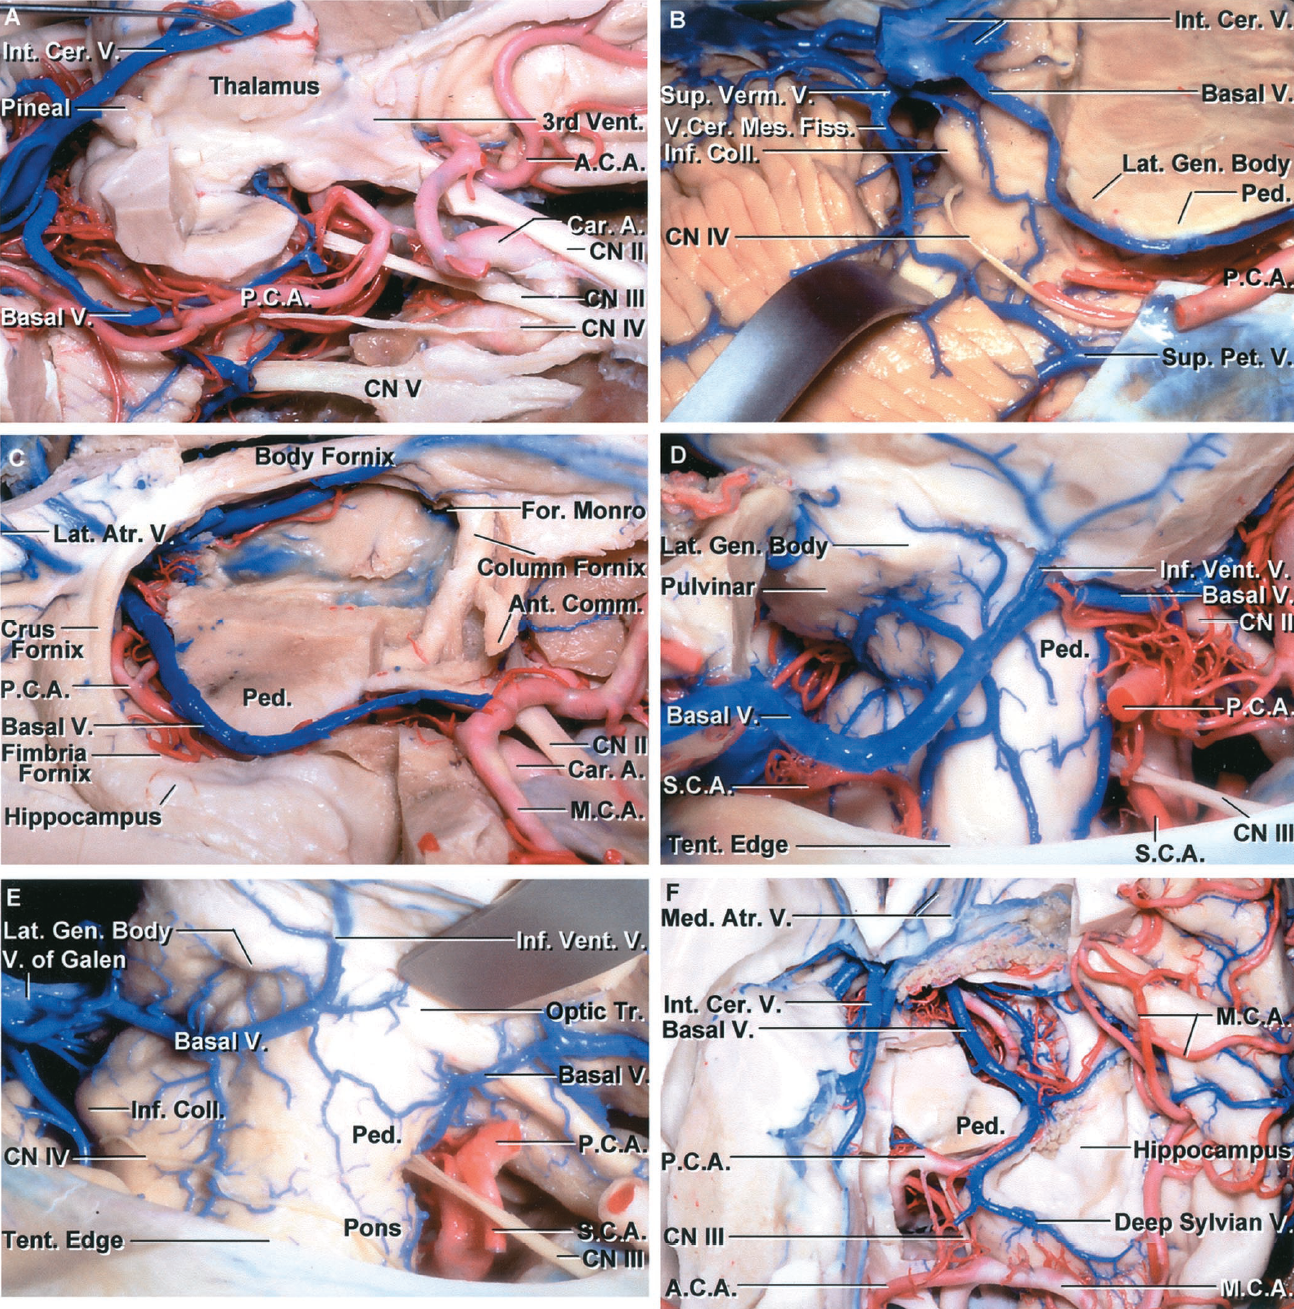 FIGURE 4.22. Basal vein. A, lateral view with the right hemisphere removed. The internal cerebral veins course between the upper parts of the thalami. The basal vein courses posteriorly above the posterior cerebral artery. The nerves in the wall of the cavernous sinus have been exposed. B, superolateral view of the quadrigeminal cistern. The section of the brainstem extends through the cerebral peduncle and lateral geniculate body. The basal vein passes posteriorly above the posterior cerebral artery to join the internal cerebral vein in the quadrigeminal cistern. A vein courses parallel and below the basal vein connecting the veins in the quadrigeminal cistern and cerebellomesencephalic fissure with the superior petrosal veins emptying into the superior petrosal sinus. The trochlear nerve arises below the inferior colliculus. C, the right hemisphere including the thalamus has been removed to expose the basal vein coursing through the crural, ambient, and quadrigeminal cisterns and the internal cerebral veins coursing in the roof of the third ventricle. The hippocampus and fimbria have been preserved. The internal cerebral and basal veins course in close relationship to the fornix. The internal cerebral vein courses below the body of the fornix. The basal vein courses medial to the fimbria and the basal and internal cerebral veins join to form the vein of Galen in the area medial to the crus of the fornix. A column of the fornix and the anterior commissure are at the anterior margin of the exposure. D, the right temporal lobe, including the hippocampus and the choroid plexus, has been removed to expose the right basal vein passing through the ambient and quadrigeminal cistern. The roof of the temporal horn formed by the thalamus and tapetum of the corpus callosum is drained by the inferior ventricular vein that joins the basal vein by passing through the choroidal fissure. This basal vein in this case does not empty into the vein of Galen, but passes laterally below the temporal lobe to empty into a tentorial sinus. E, lateral view of another basal vein. The middle segment of this basal vein is hypoplastic. The posterior segment of the basal vein receives the inferior ventricular vein and passes around the midbrain to empty into the vein of Galen. The anterior part of the territory normally drained by the basal vein empties into the sylvian veins, leaving a hypoplastic midsegment lateral to the peduncle. F, anterosuperior view of the left basal vein coursing through the crural, ambient, and quadrigeminal cisterns. The basal vein arises at the union of the sylvian and anterior cerebral veins and passes posteriorly above the posterior cerebral artery in the crural cistern, located between the peduncle and uncus. It exits the crural cistern to enter the ambient cistern, located between the midbrain and parahippocampal gyrus, and terminates in the quadrigeminal cistern. The third nerve passes below the posterior cerebral artery. Medial atrial veins cross the medial atrial wall and empty into the veins in the quadrigeminal cistern. The internal cerebral vein courses in the roof of the third ventricle. A., artery; A.C.A., anterior cerebral artery; Ant., anterior; Atr., atrial; Car., carotid; Cer., cerebral; Cer.Mes., cerebellomesencephalic; CN, cranial nerve; Coll., collateral; Fiss., fissure; For., foramen; Gen., geniculate; Inf., inferior; Int., internal; Lat., lateral; M.C.A., medial cerebral artery; Med., medial; P.C.A., posterior cerebral artery; Ped., peduncle; Pet., petrosal; S.C.A., superior cerebellar artery; Sup., superior; Tent., tentorial; Tr., tract; V., vein; Vent., ventricle, ventricular; Verm., vermian.